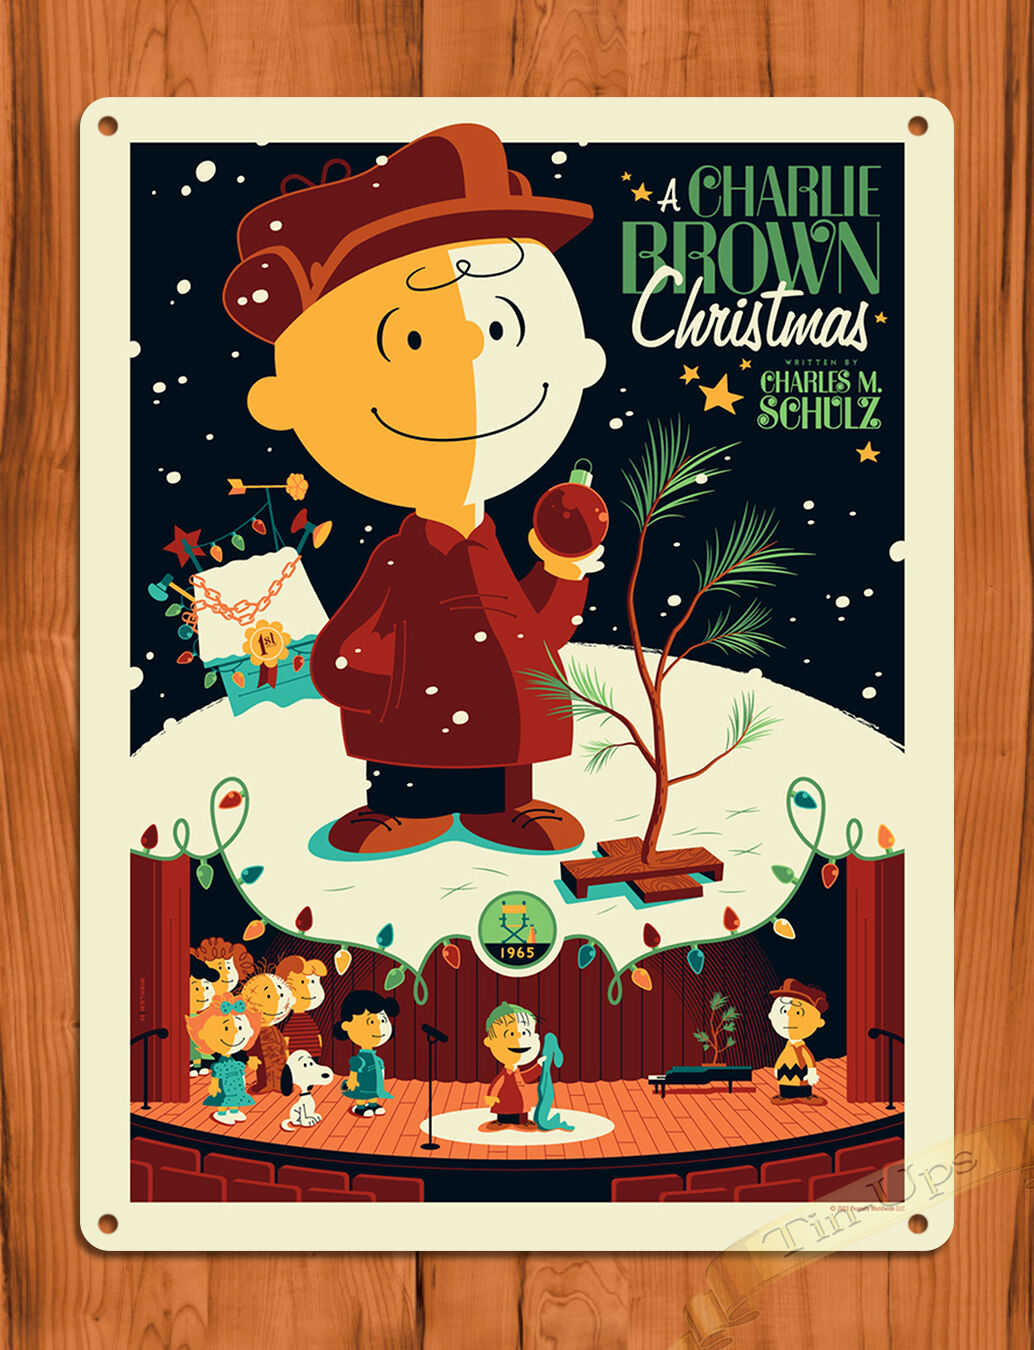 tin sign a charlie brown christmas brown art painting movie poster peanuts 1 of 1only 2 available see more - Charlie Brown Christmas Movie